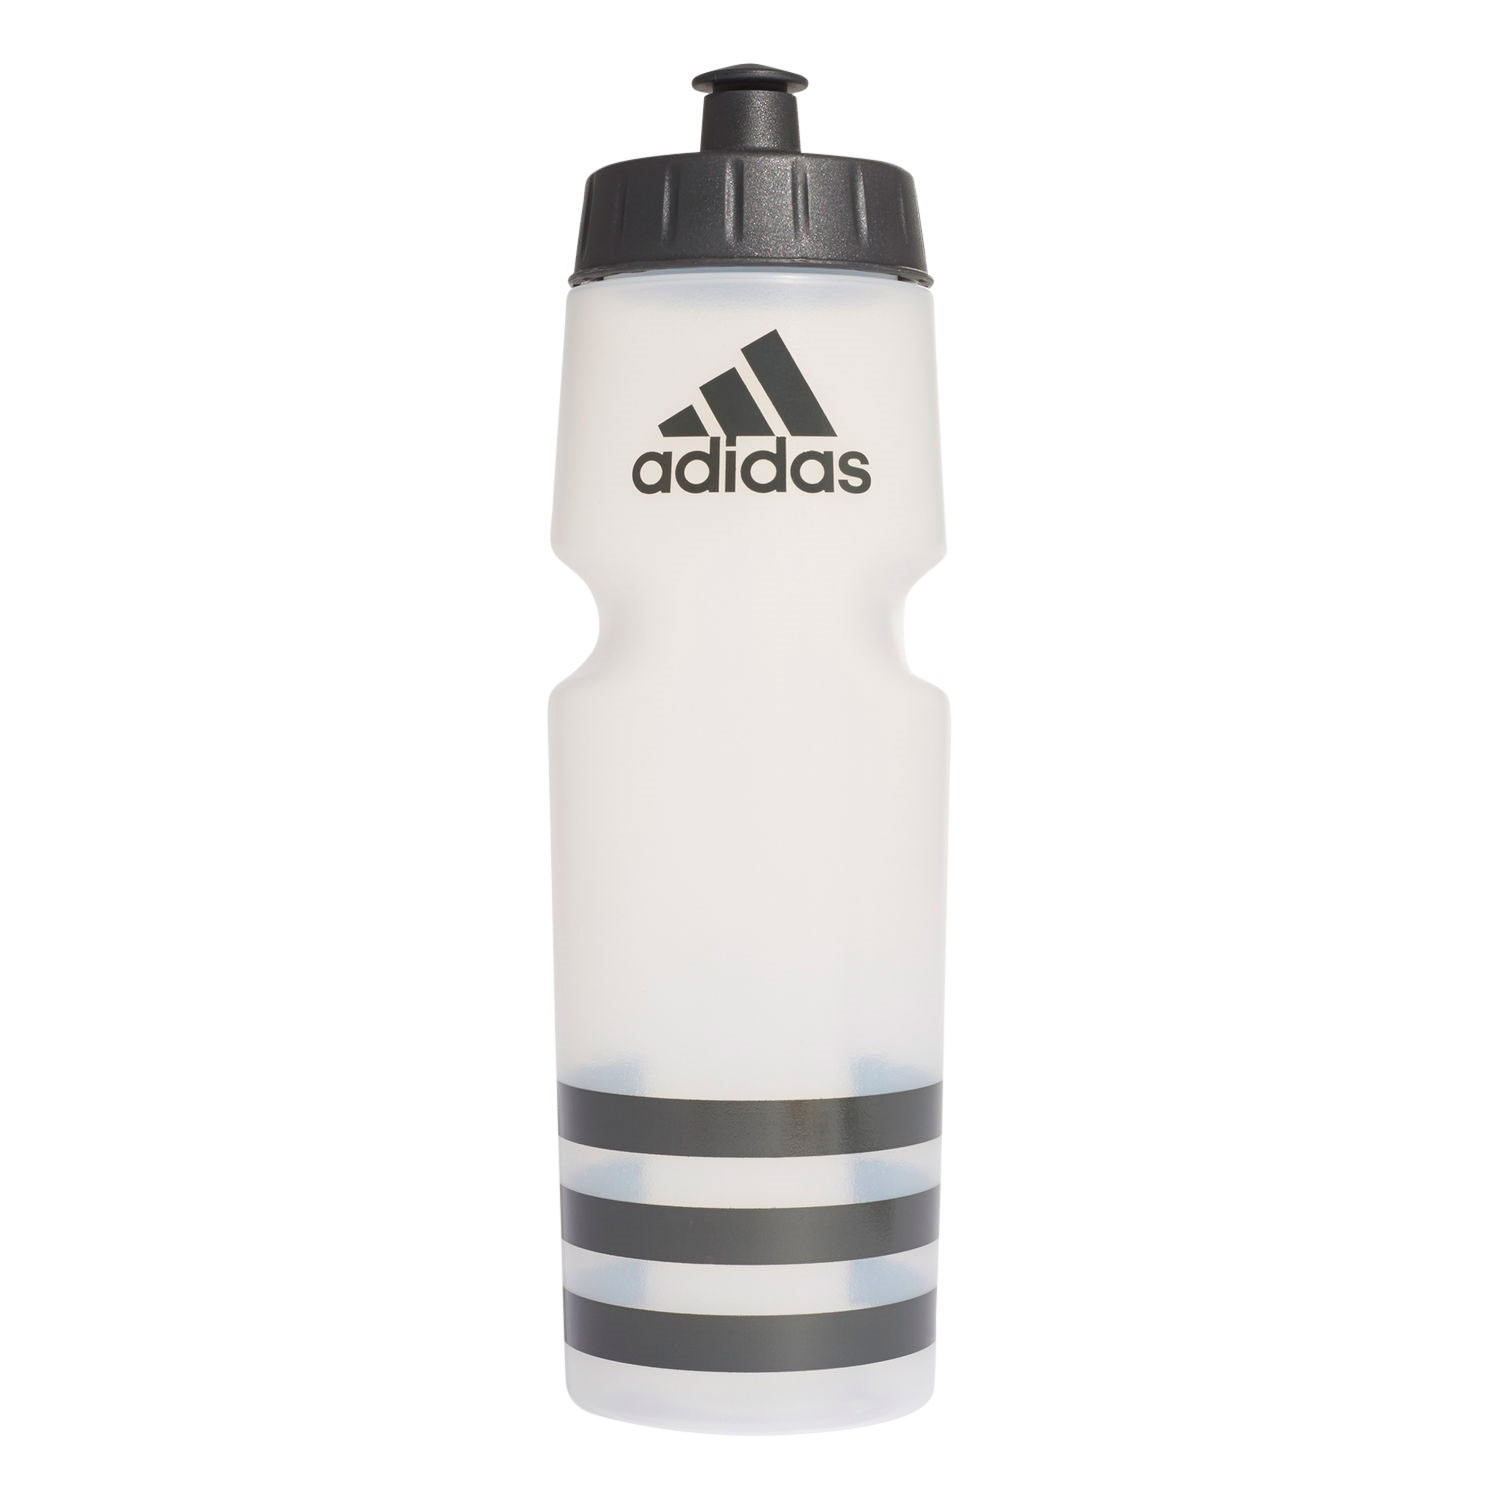 d3006fea7c Adidas Perf BPA Free Water Bottle - 750ml - Transparent/Carbon | Sportitude